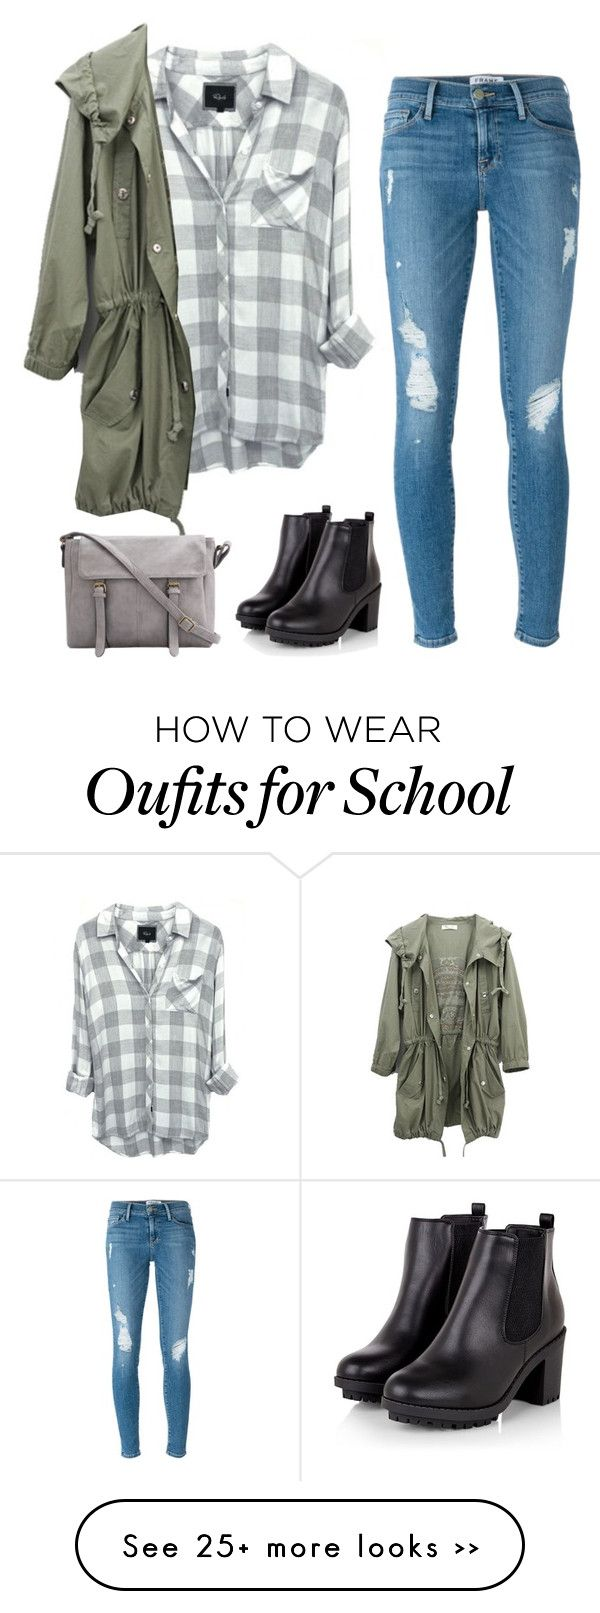 """back to school in style"" by niclex on Polyvore featuring Frame Denim"